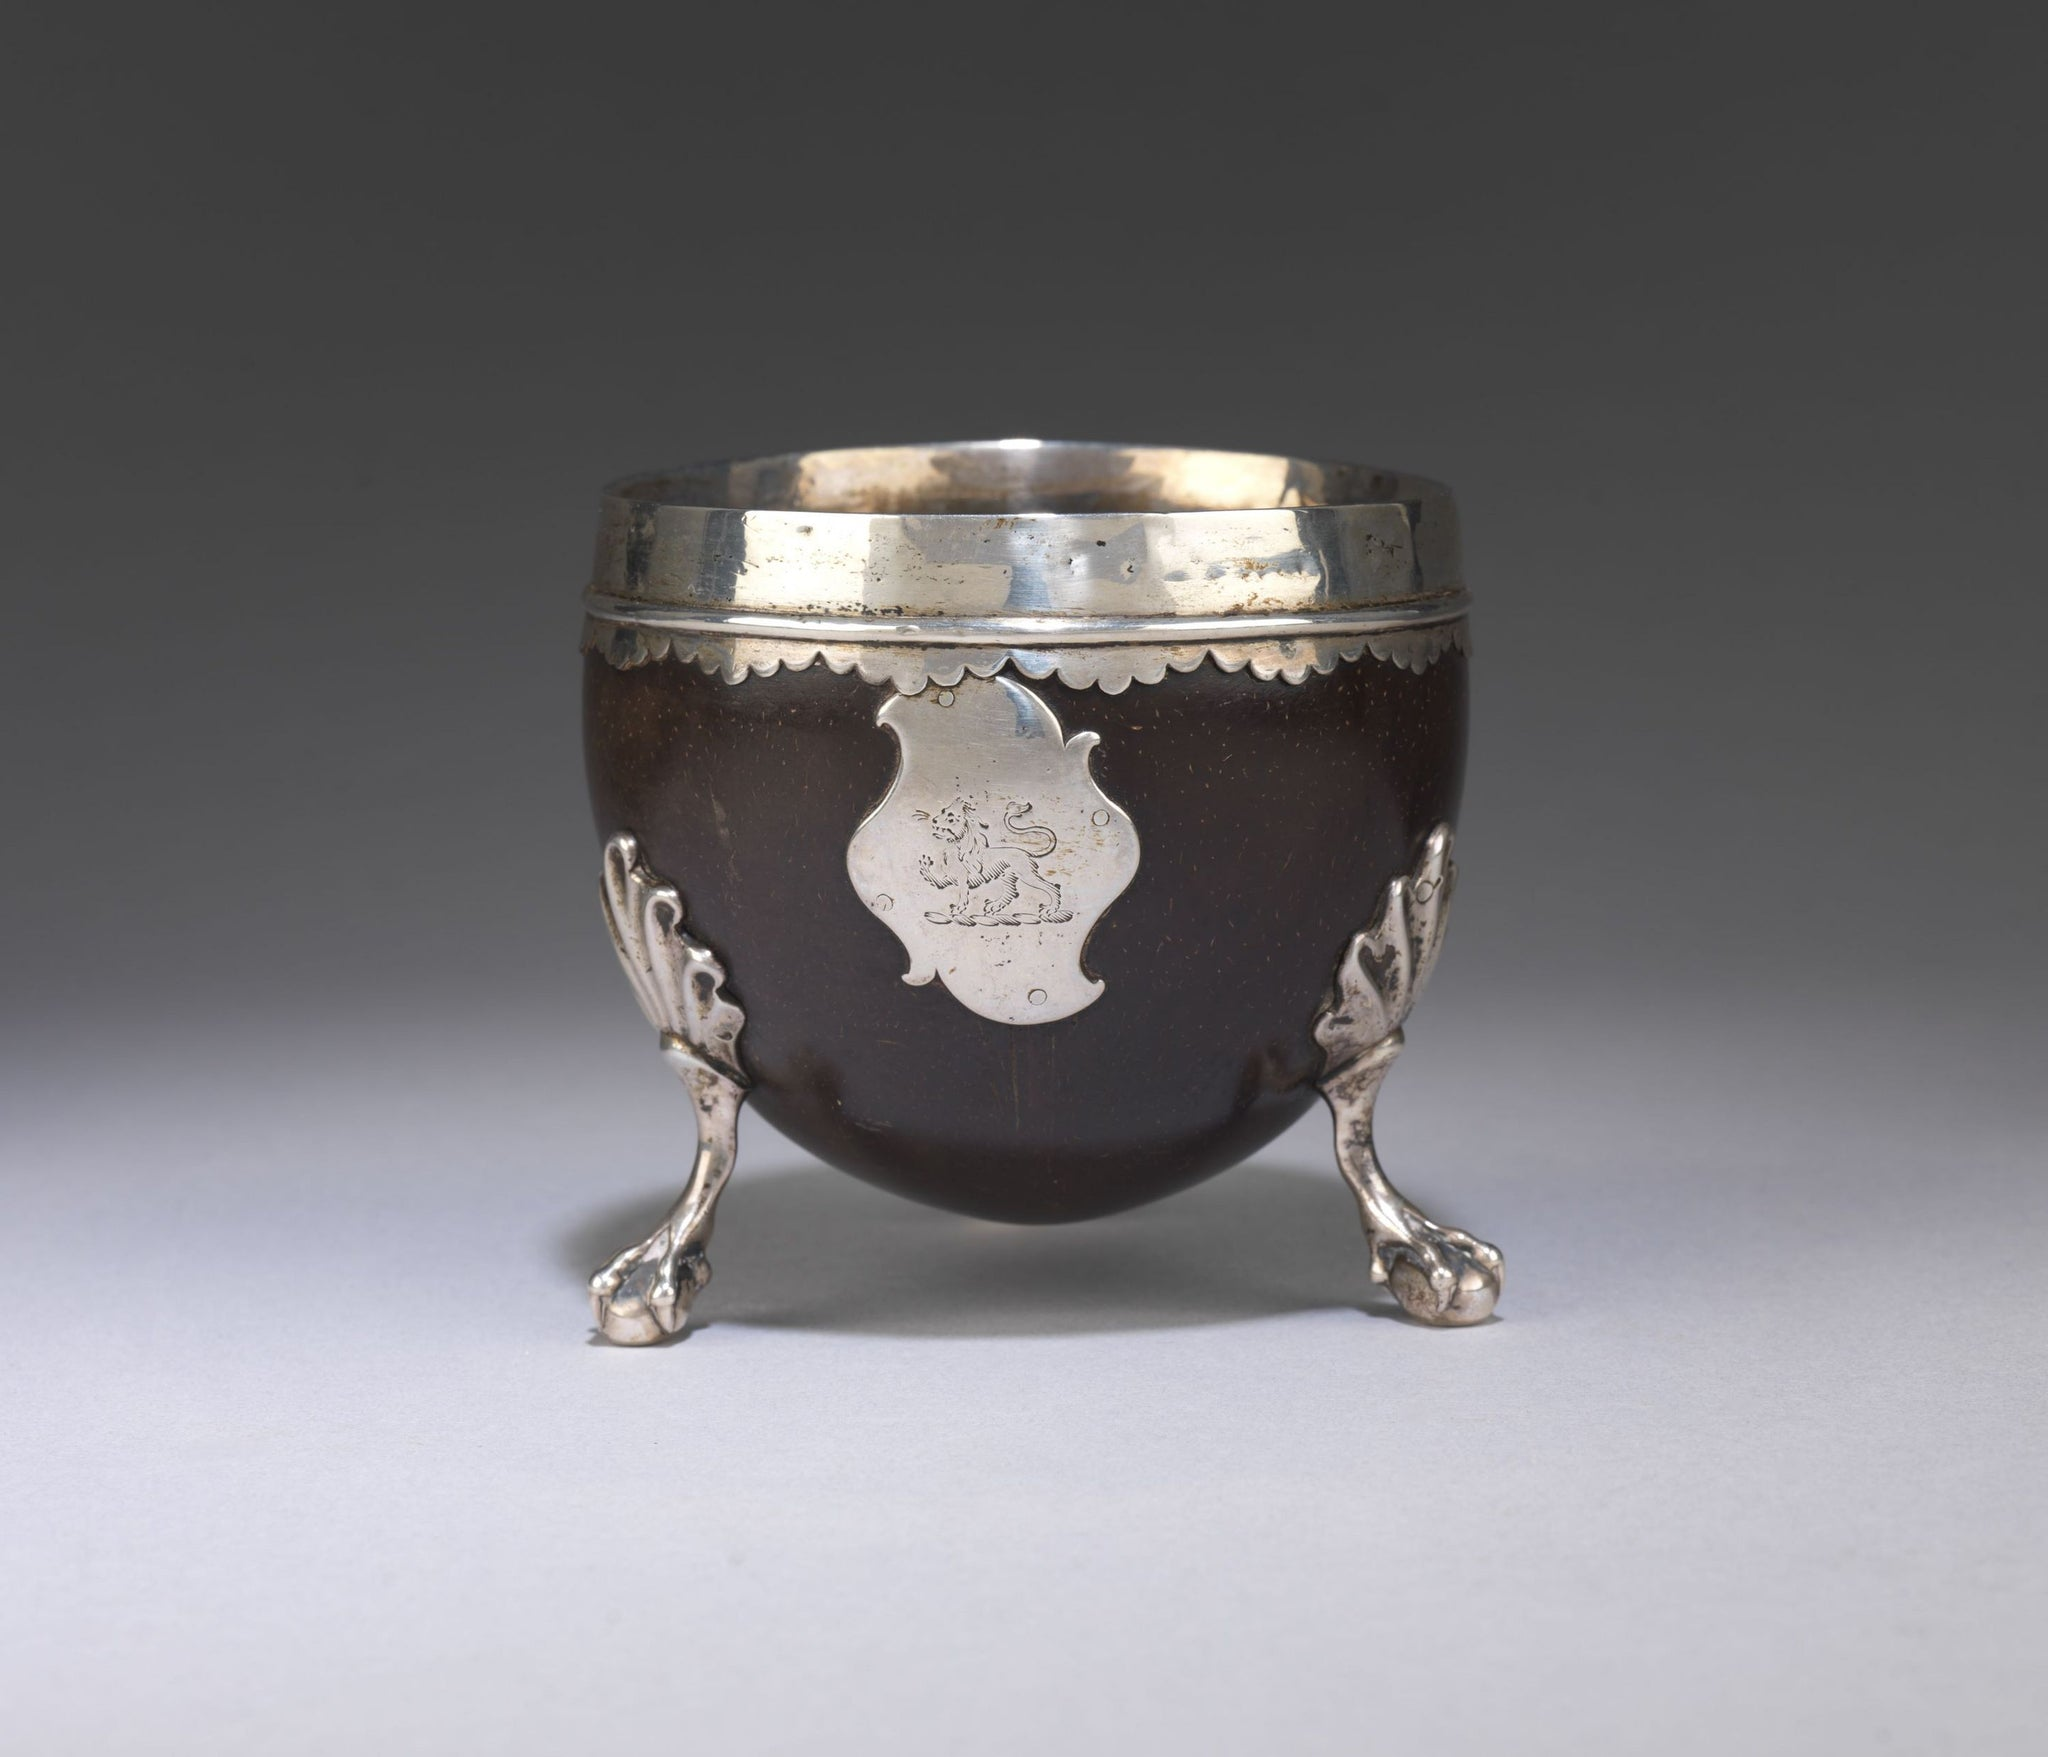 Silver Mounted Coconut Vessel with Armorial Cartouche